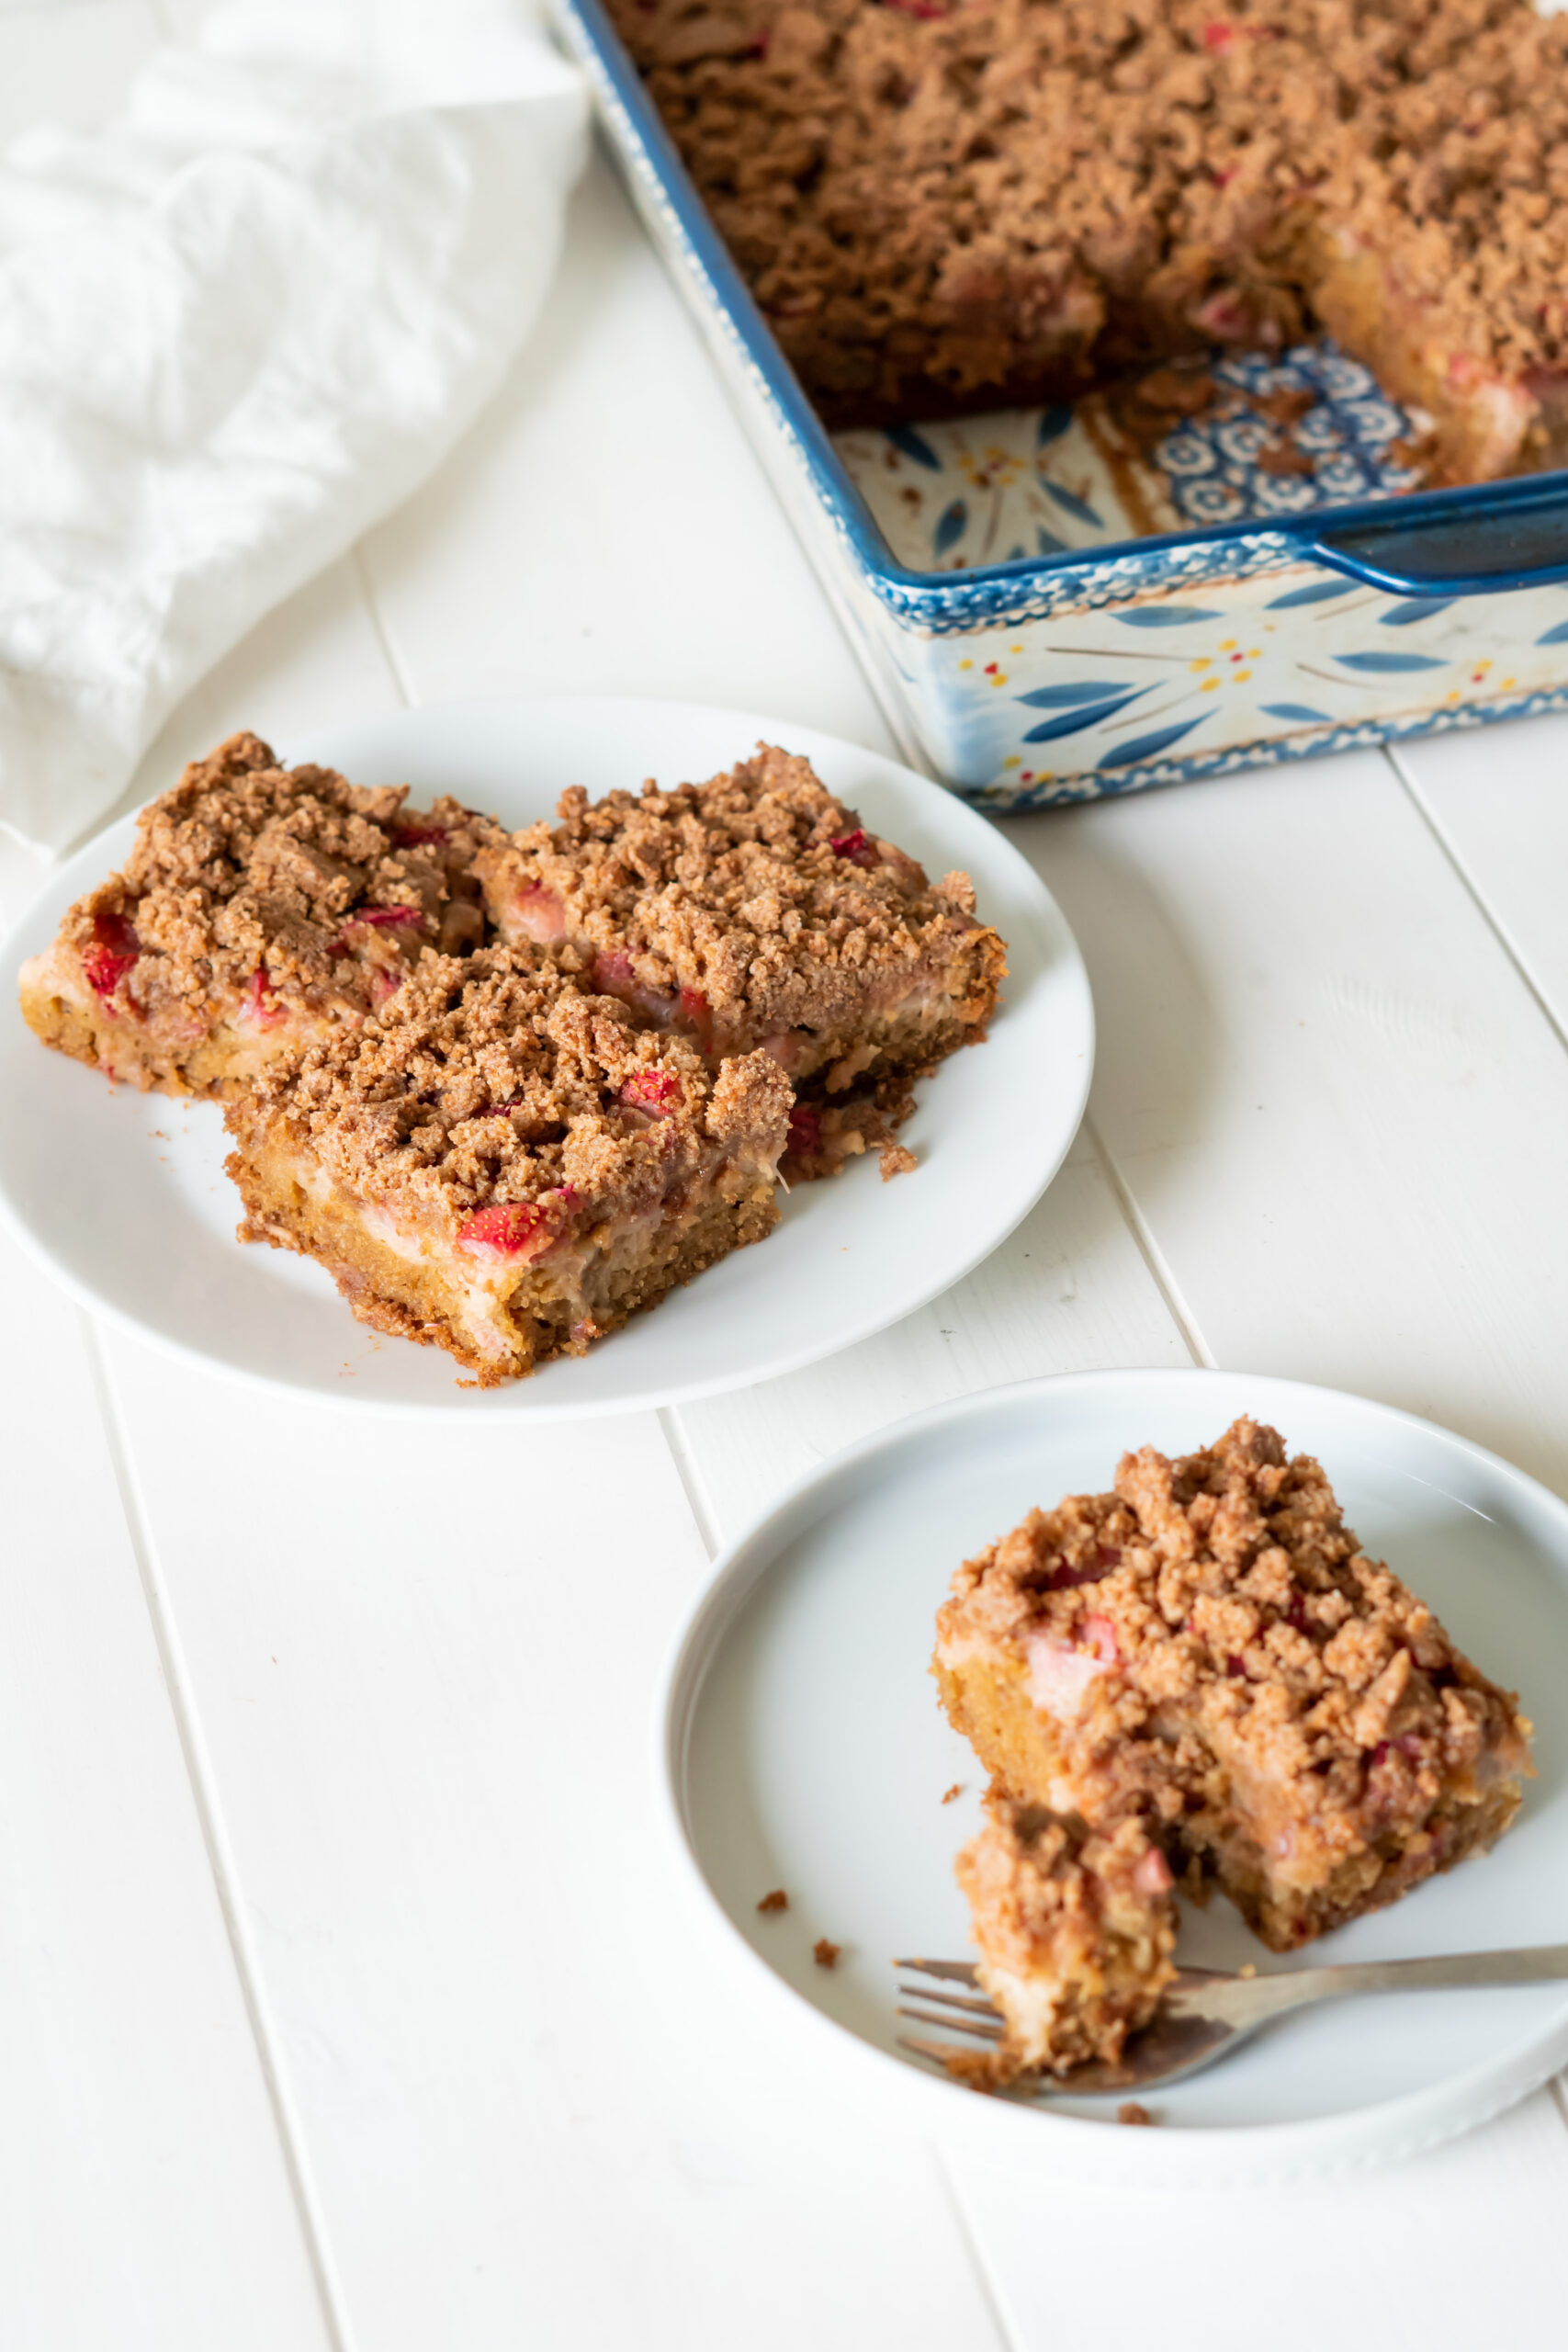 Three squares of rhubarb cake on a plate for serving.